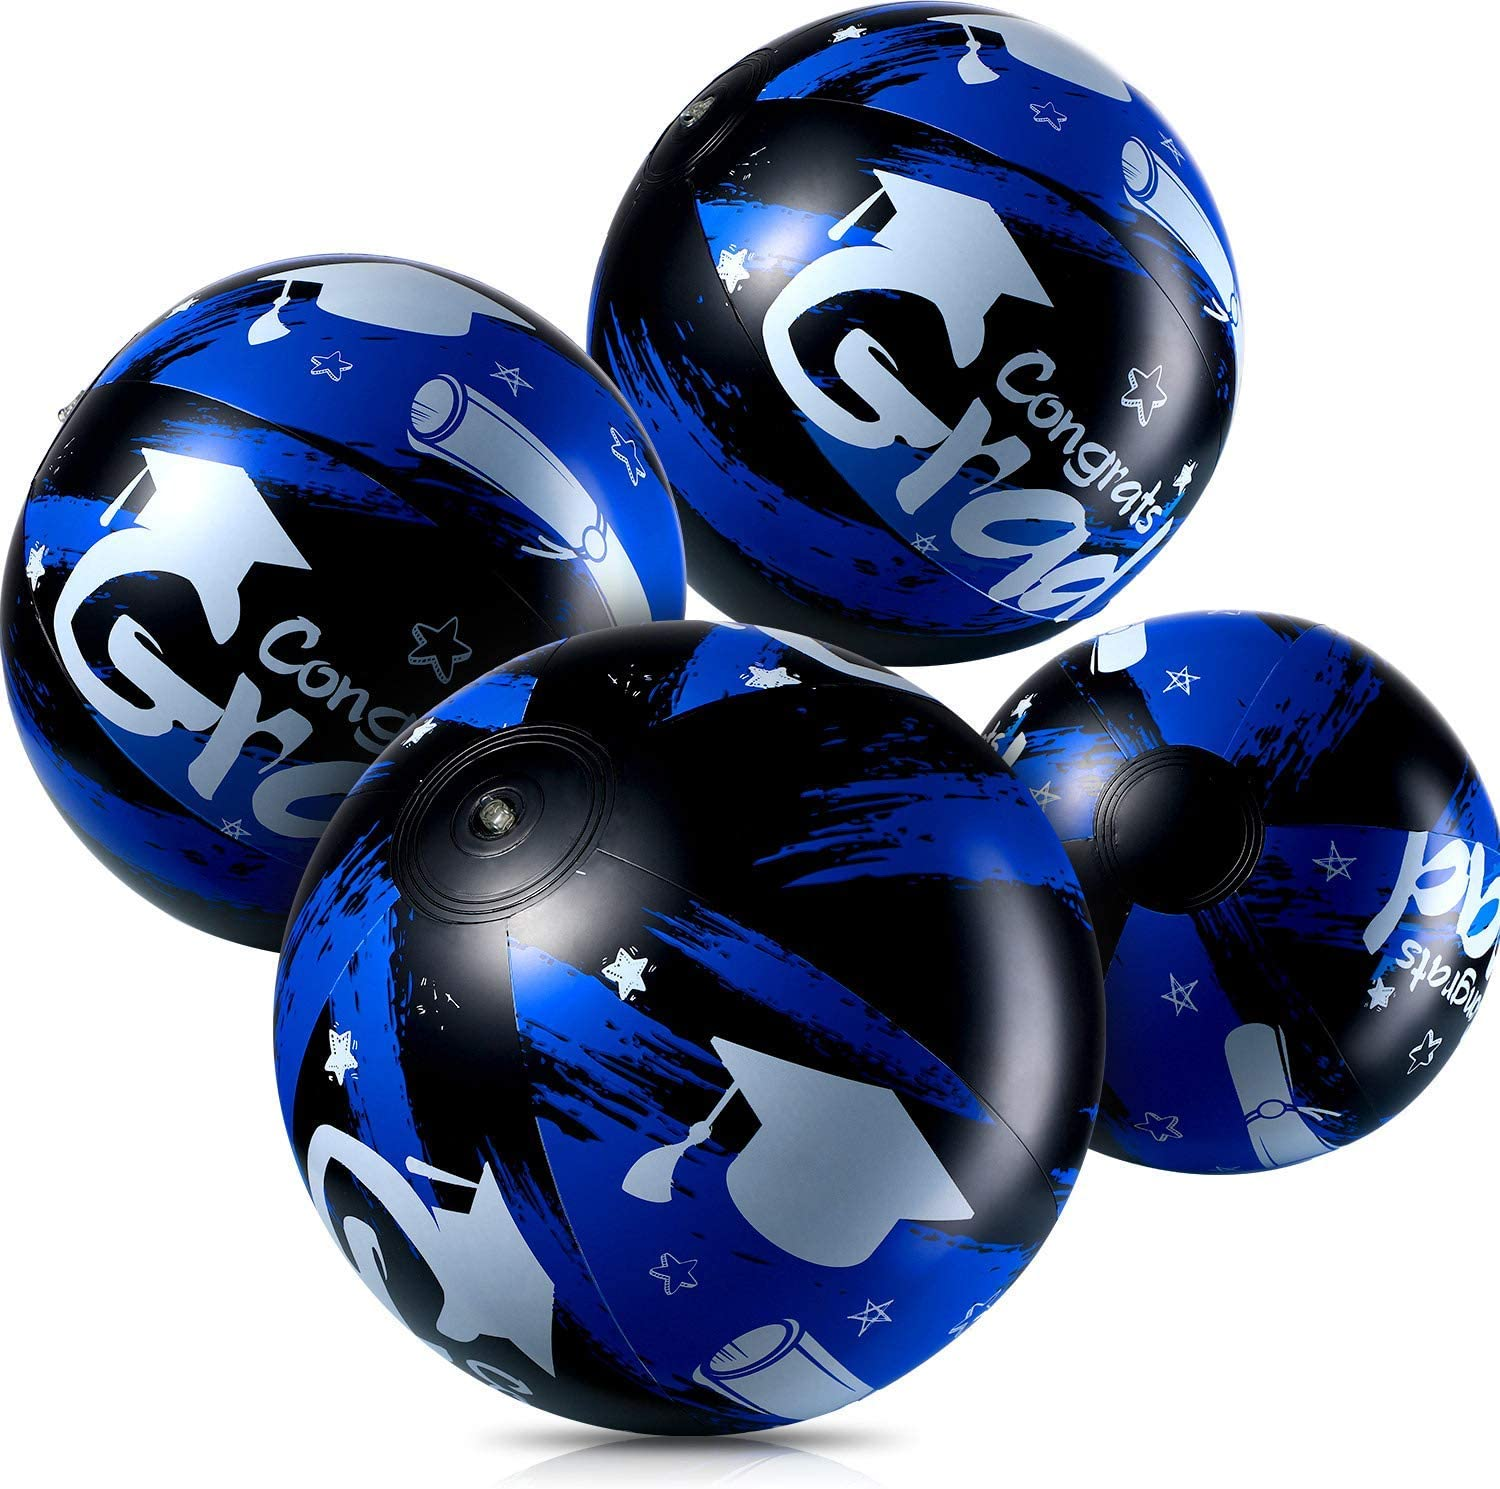 4 Pieces Inflatable Beach Balls Max 76% Cheap sale OFF Blue Party Graduation for Jumbo